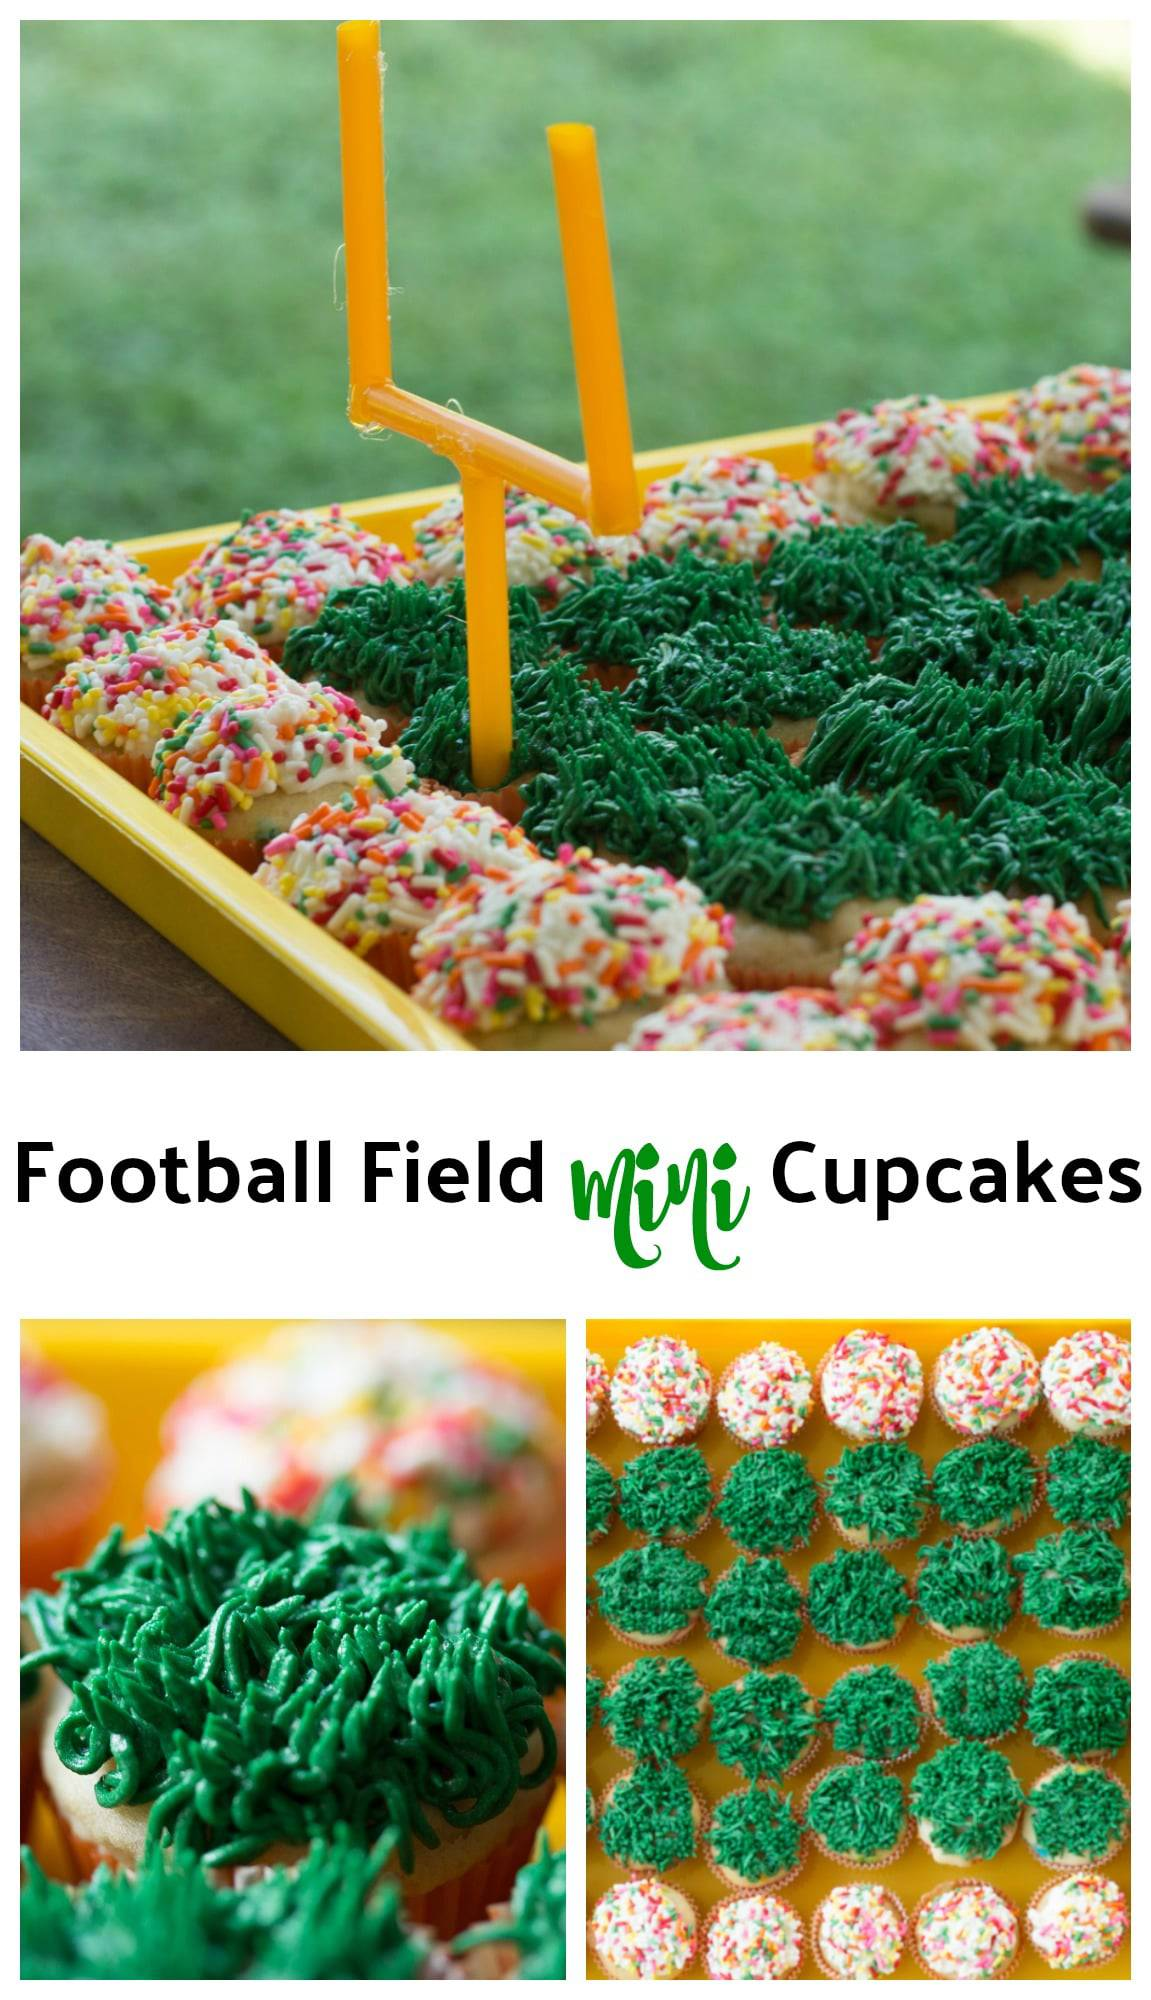 Football Field Mini Cupcakes || Erin Brighton | Super Bowl | Football Party | tailgating | cake decorating | gluten free | party food